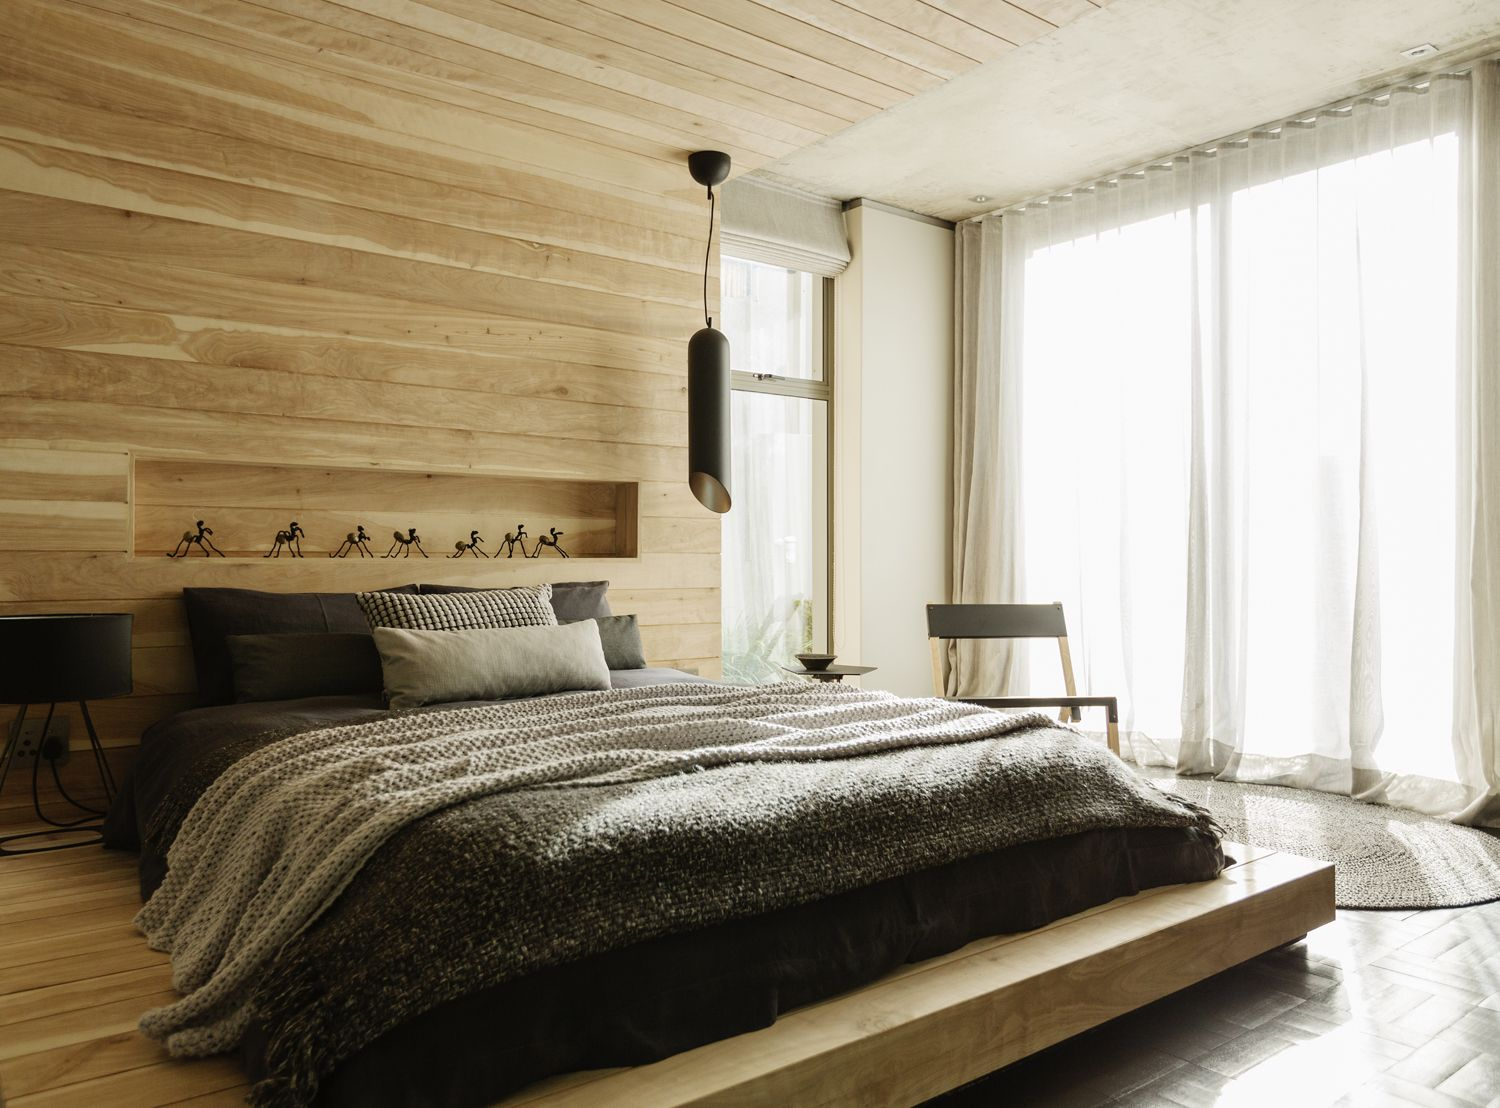 24 ways to get creative with bedroom lighting